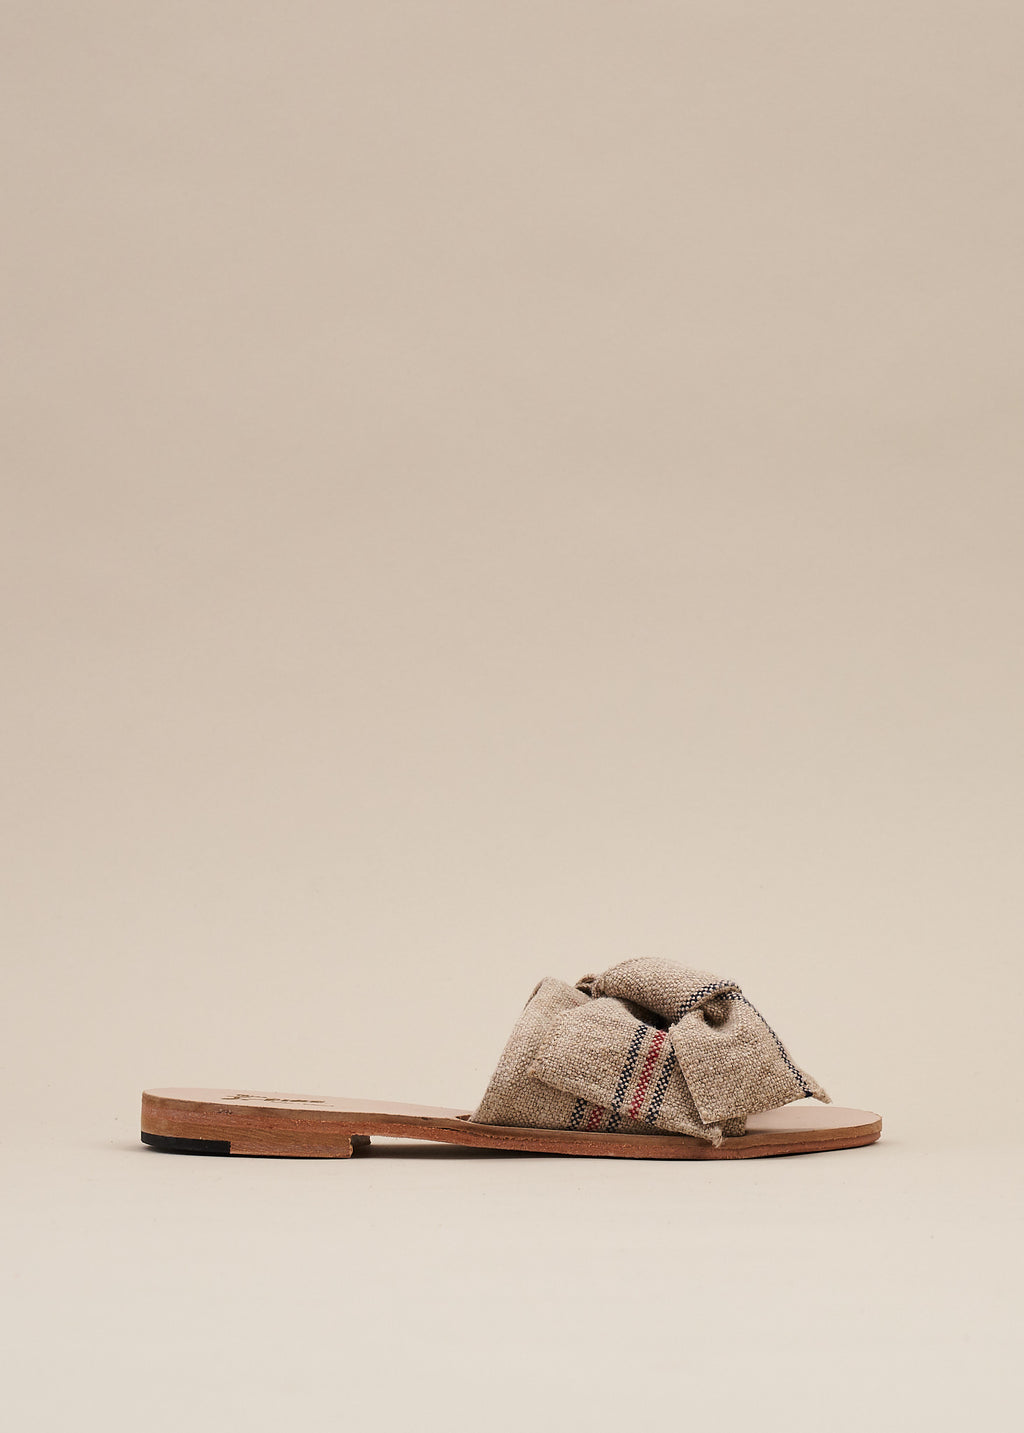 Serafina natural linen flat sandals with bow detail - LIMITED EDITION